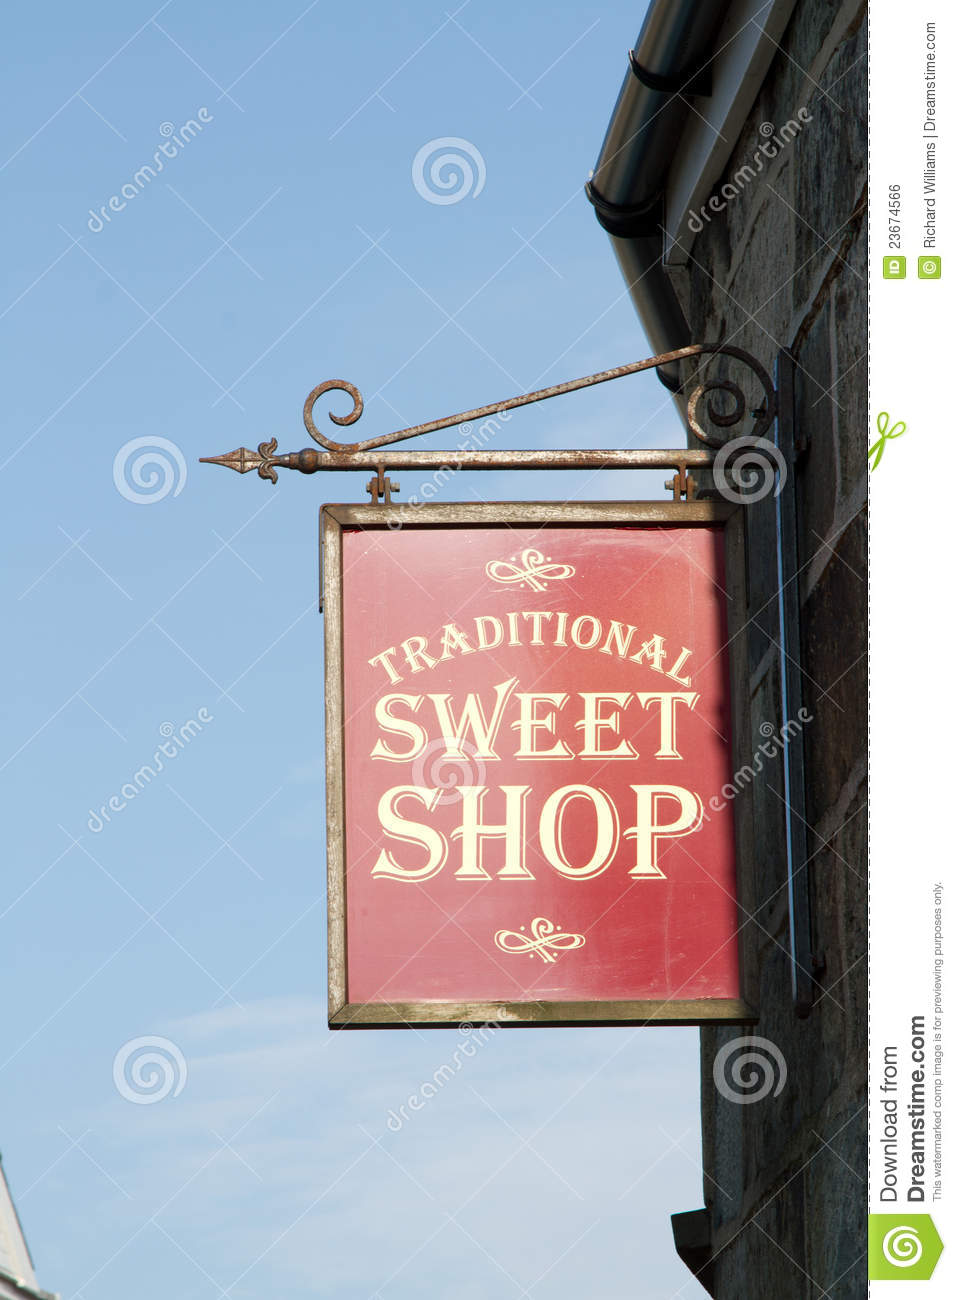 Sweet Shop Sign Royalty Free Stock Image Image 23674566